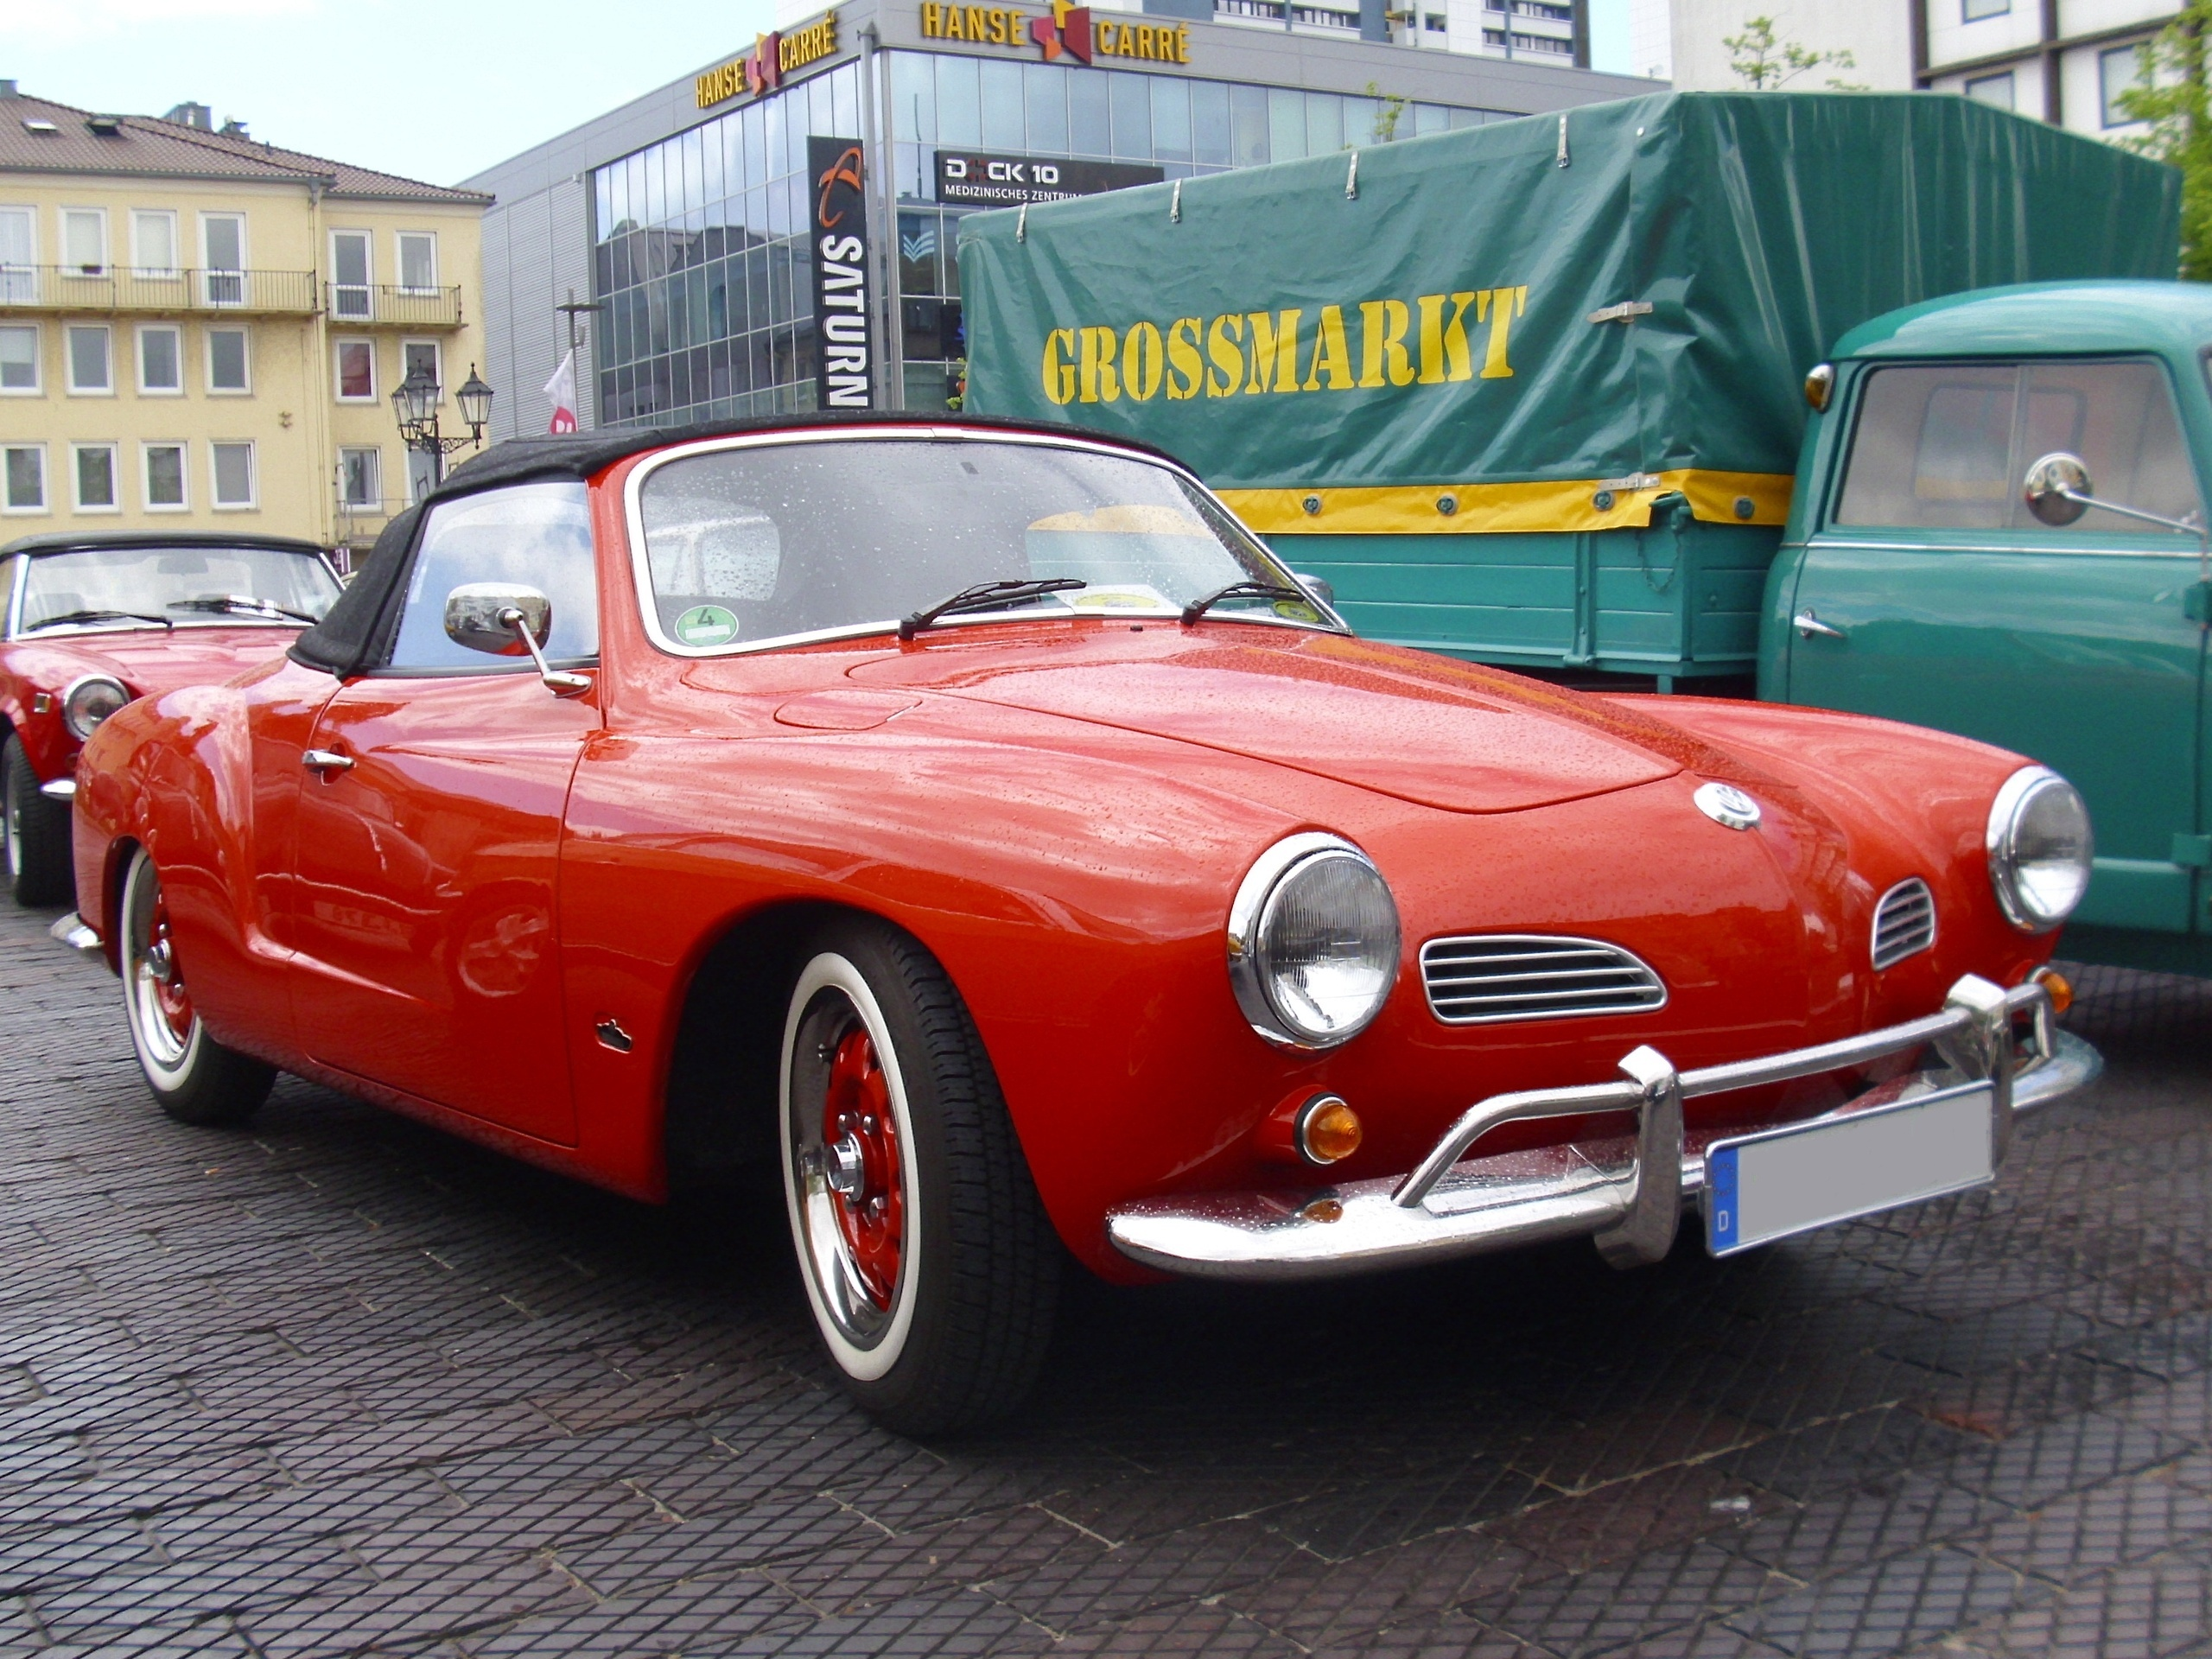 file vw karmann ghia cabriolet wikimedia commons. Black Bedroom Furniture Sets. Home Design Ideas